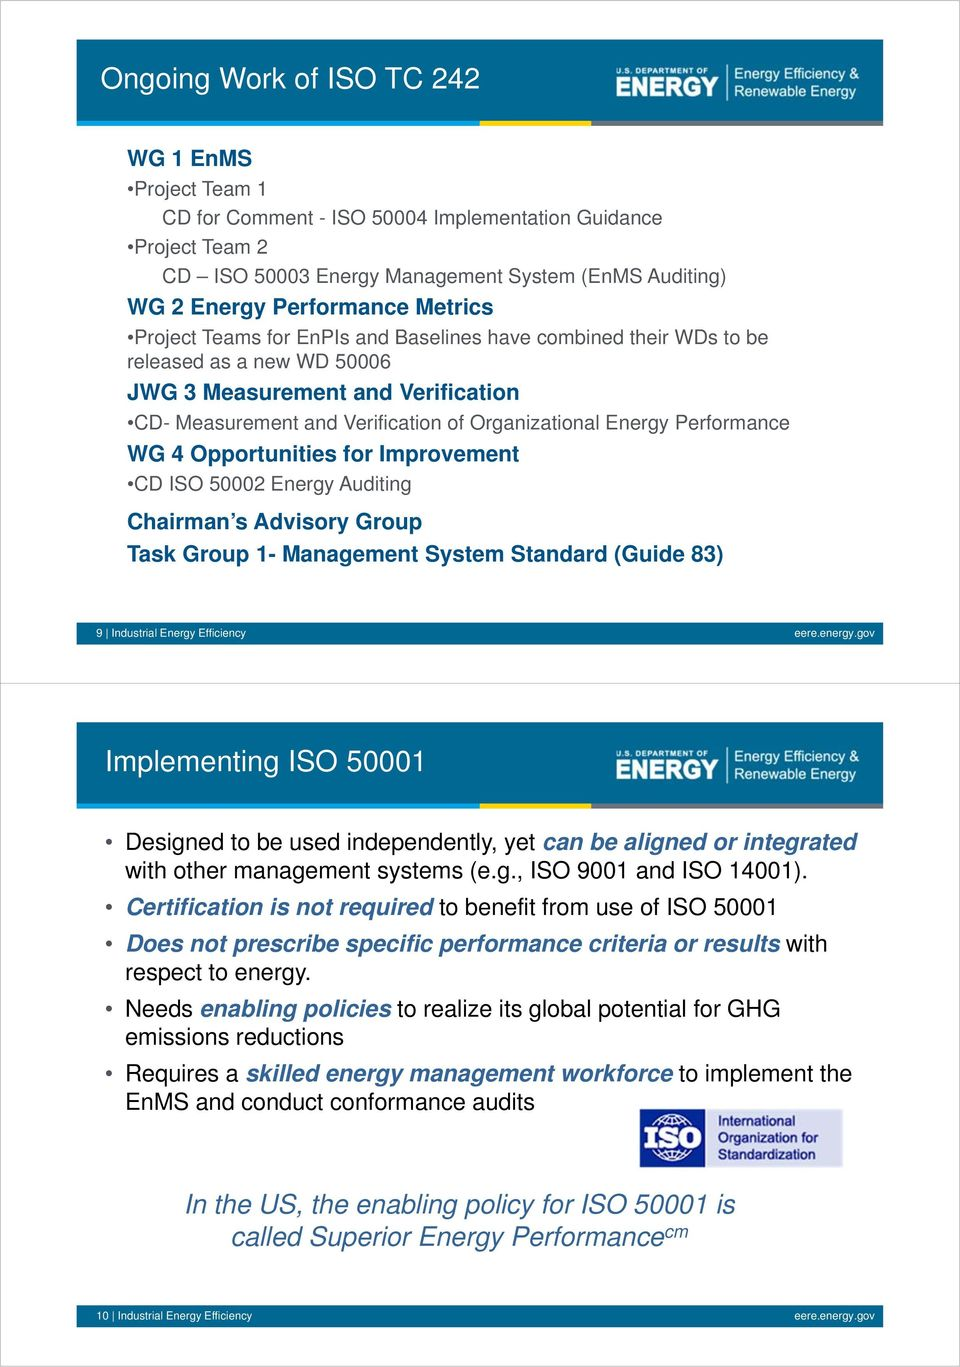 for Improvement CD ISO 50002 Energy Auditing Chairman s Advisory Group Task Group 1- Management System Standard (Guide 83) 9 Industrial Energy Efficiency eere.energy.